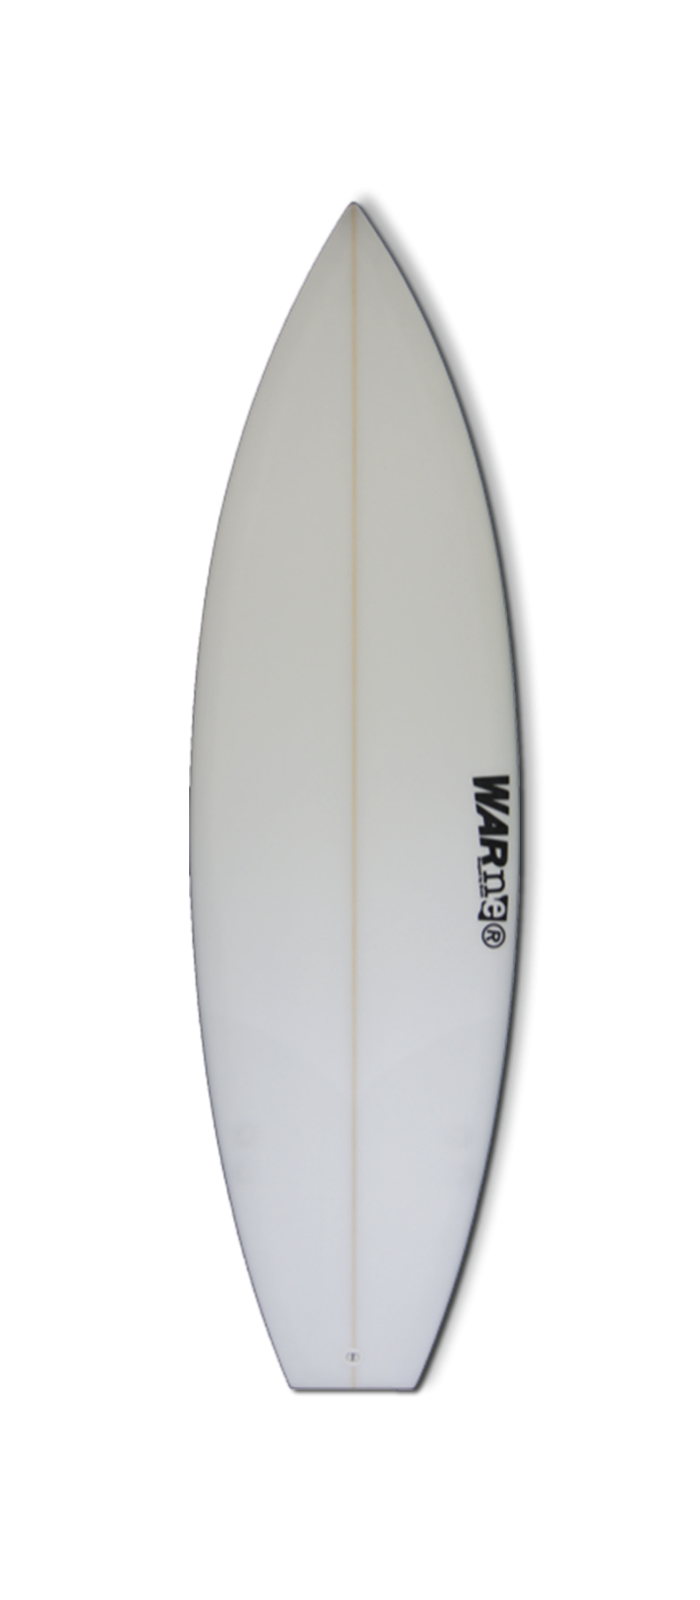 BANDIT surfboard model bottom